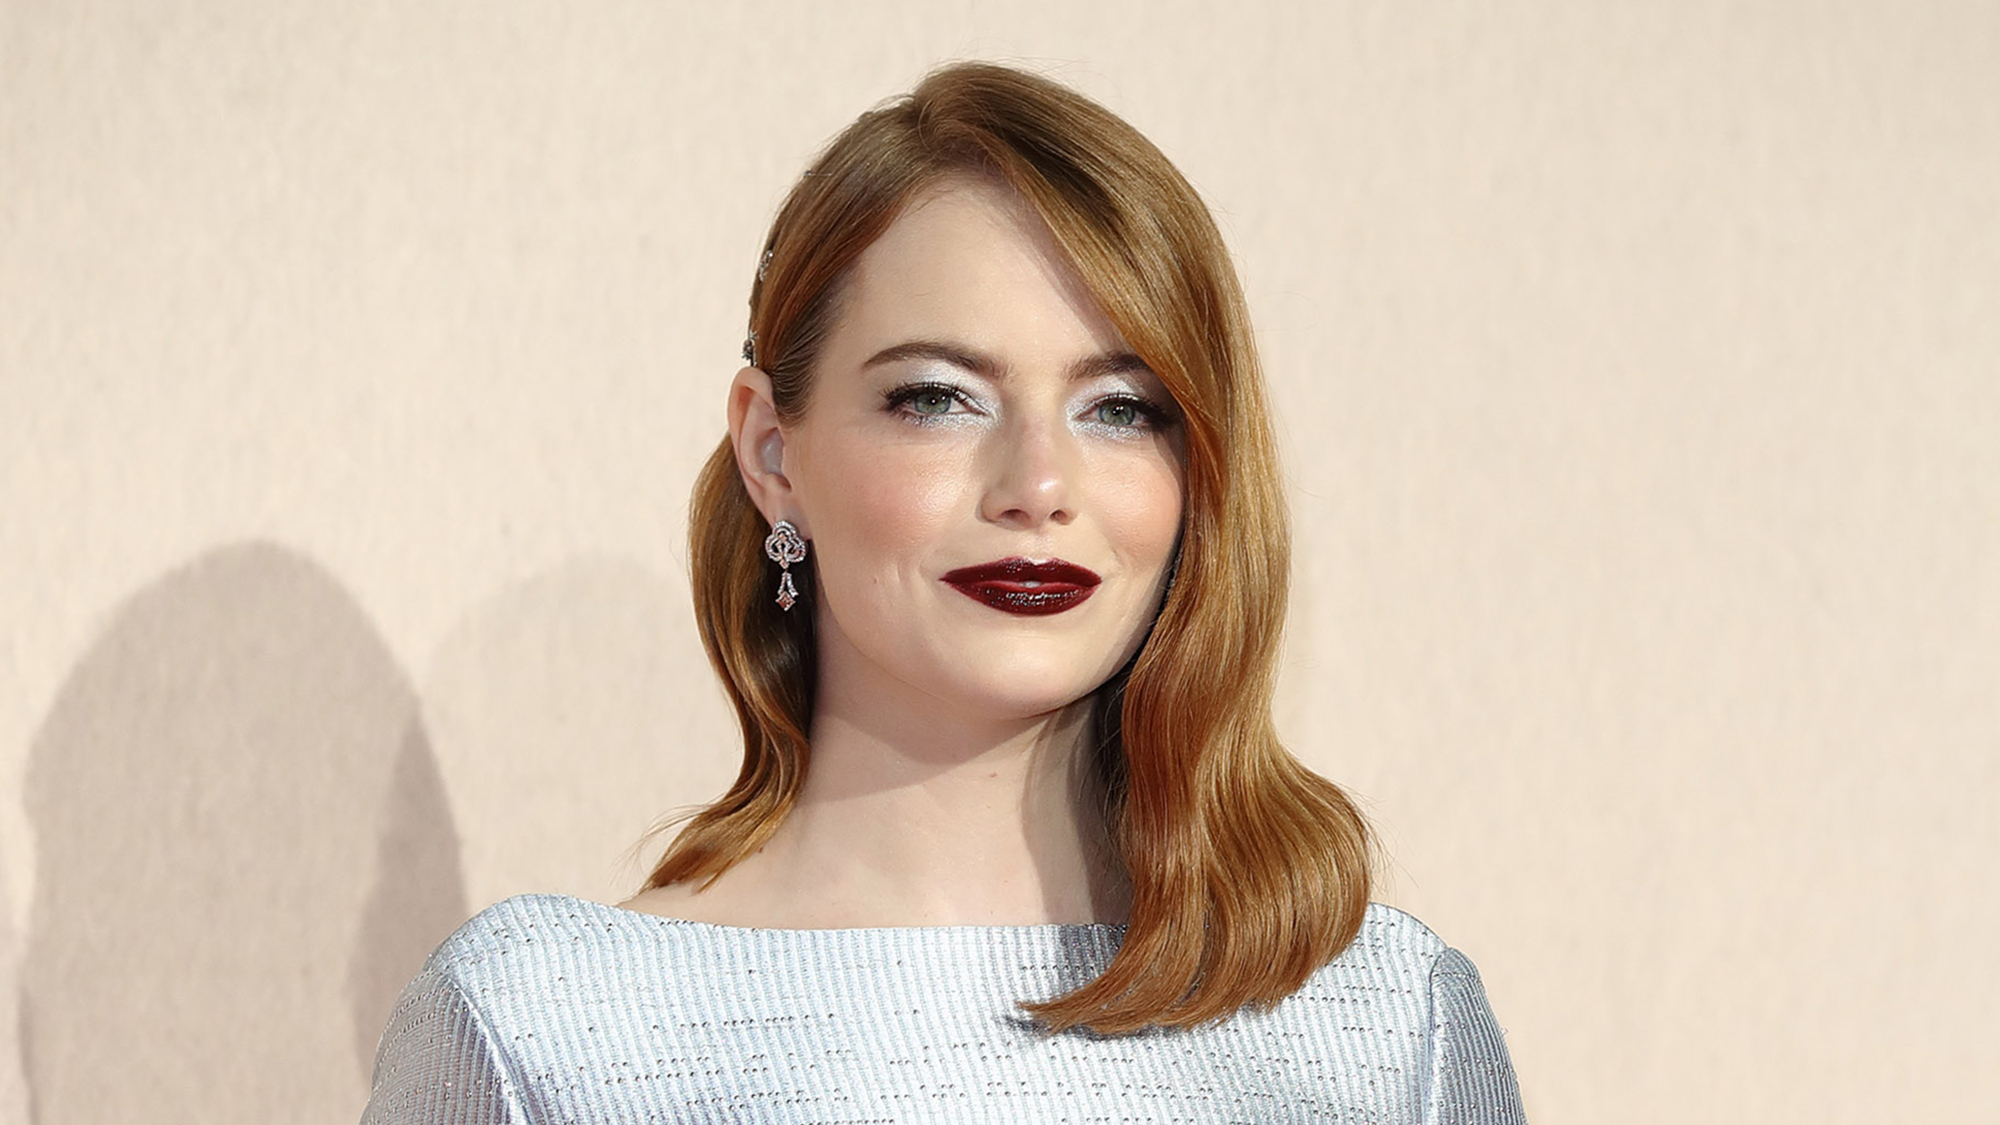 The best foundation for pale skin exists (and we have the proof)